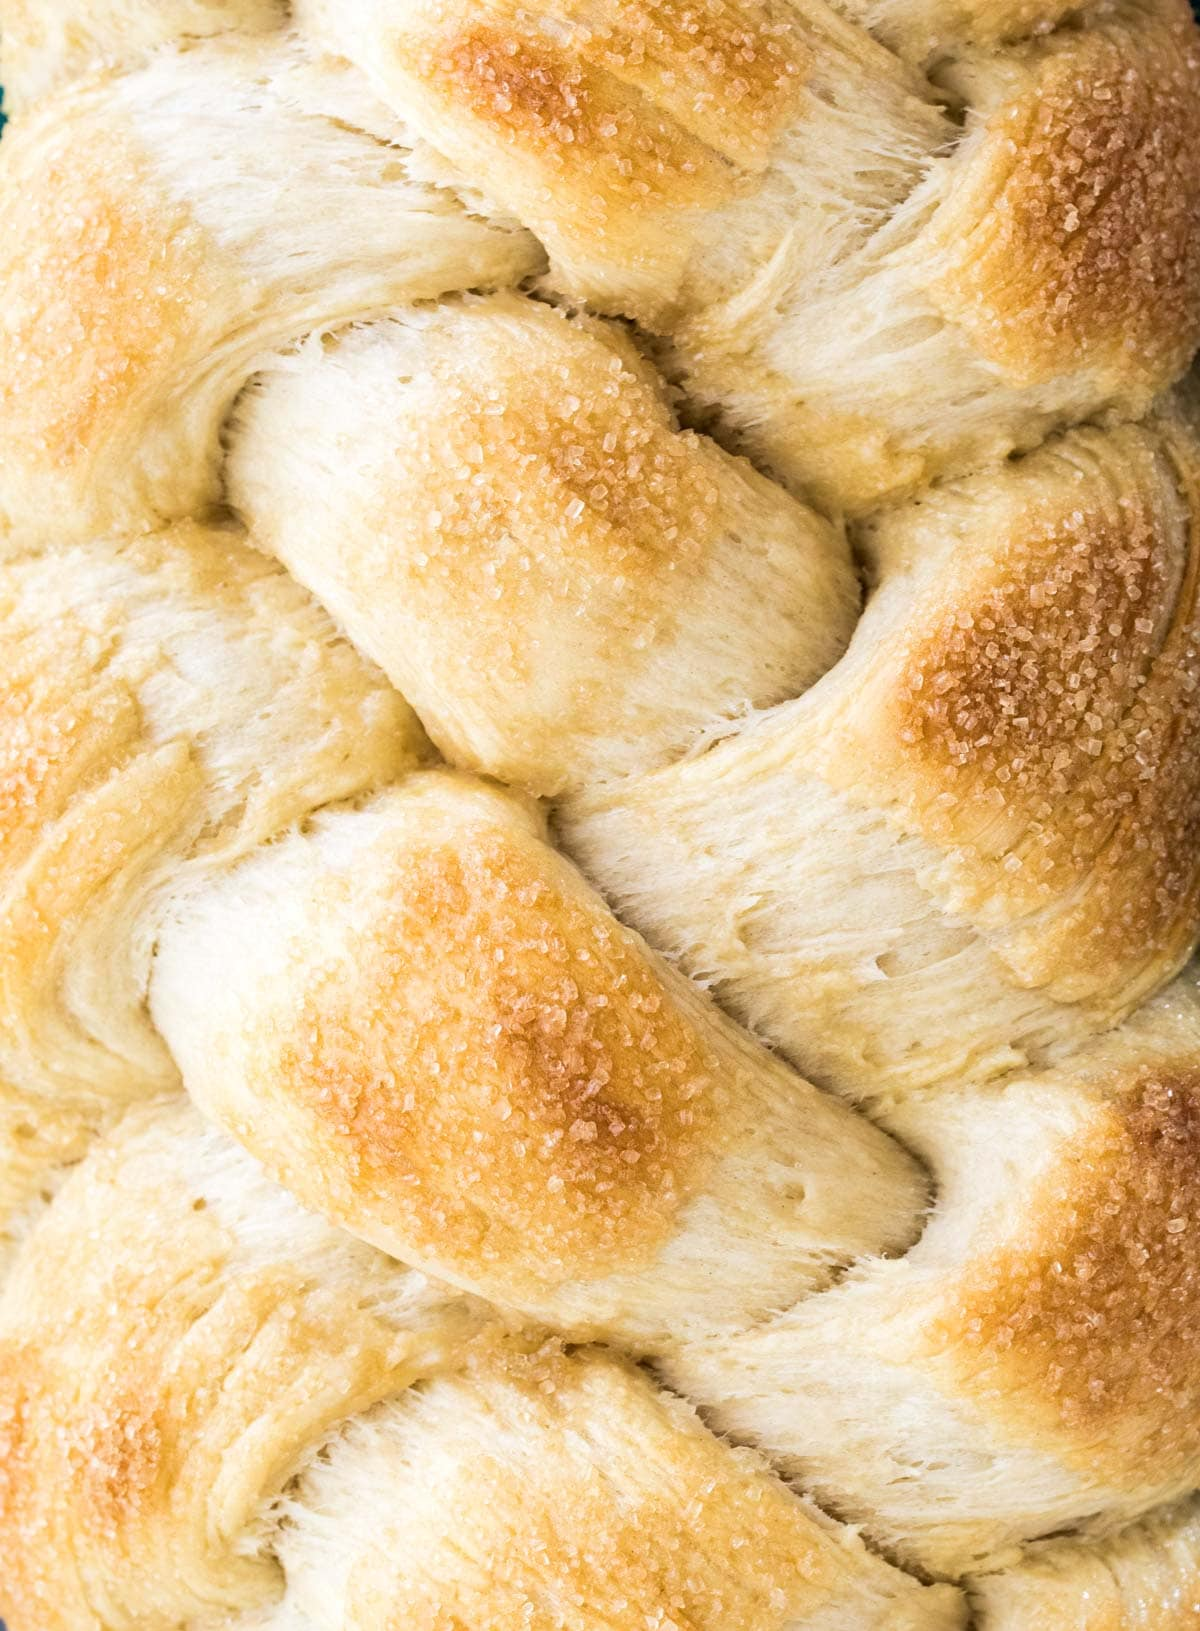 close up of braided sweet bread